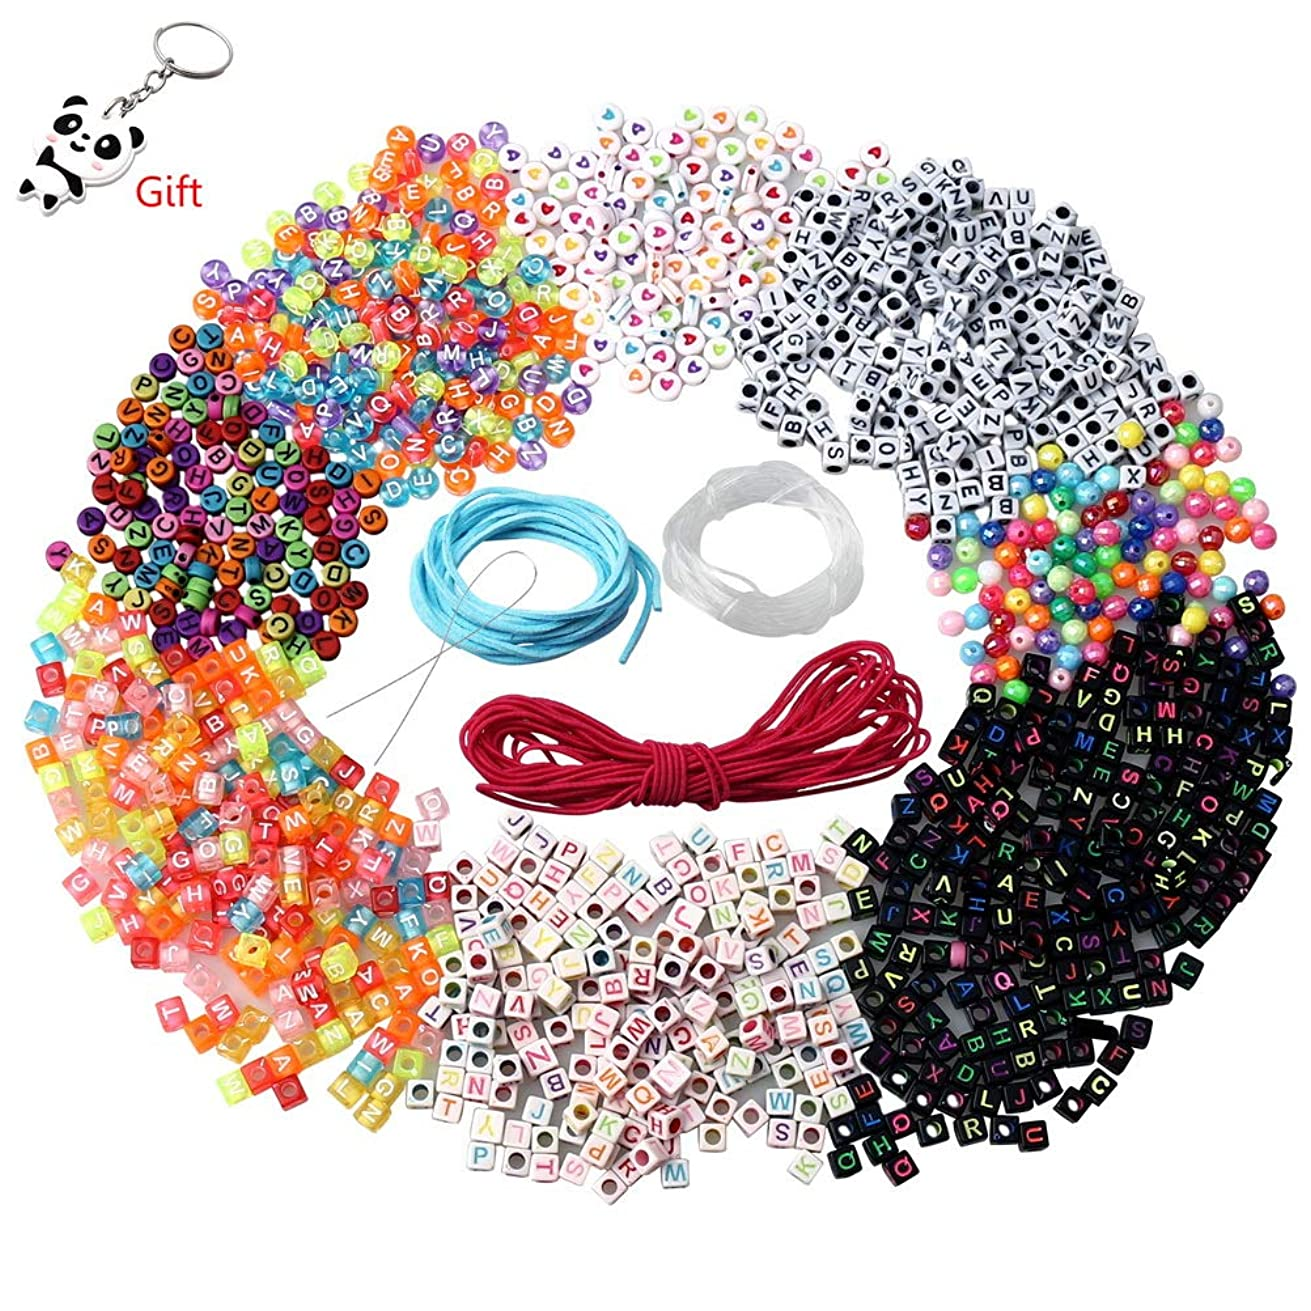 SUMAJU 1300 pcs Letter Beads,Cube Craft Letters Beads Acrylic Alphabet Letter Beads for Variety Jewelry Kits Craft Jewelry Accessories Handmade Beads DIY Material